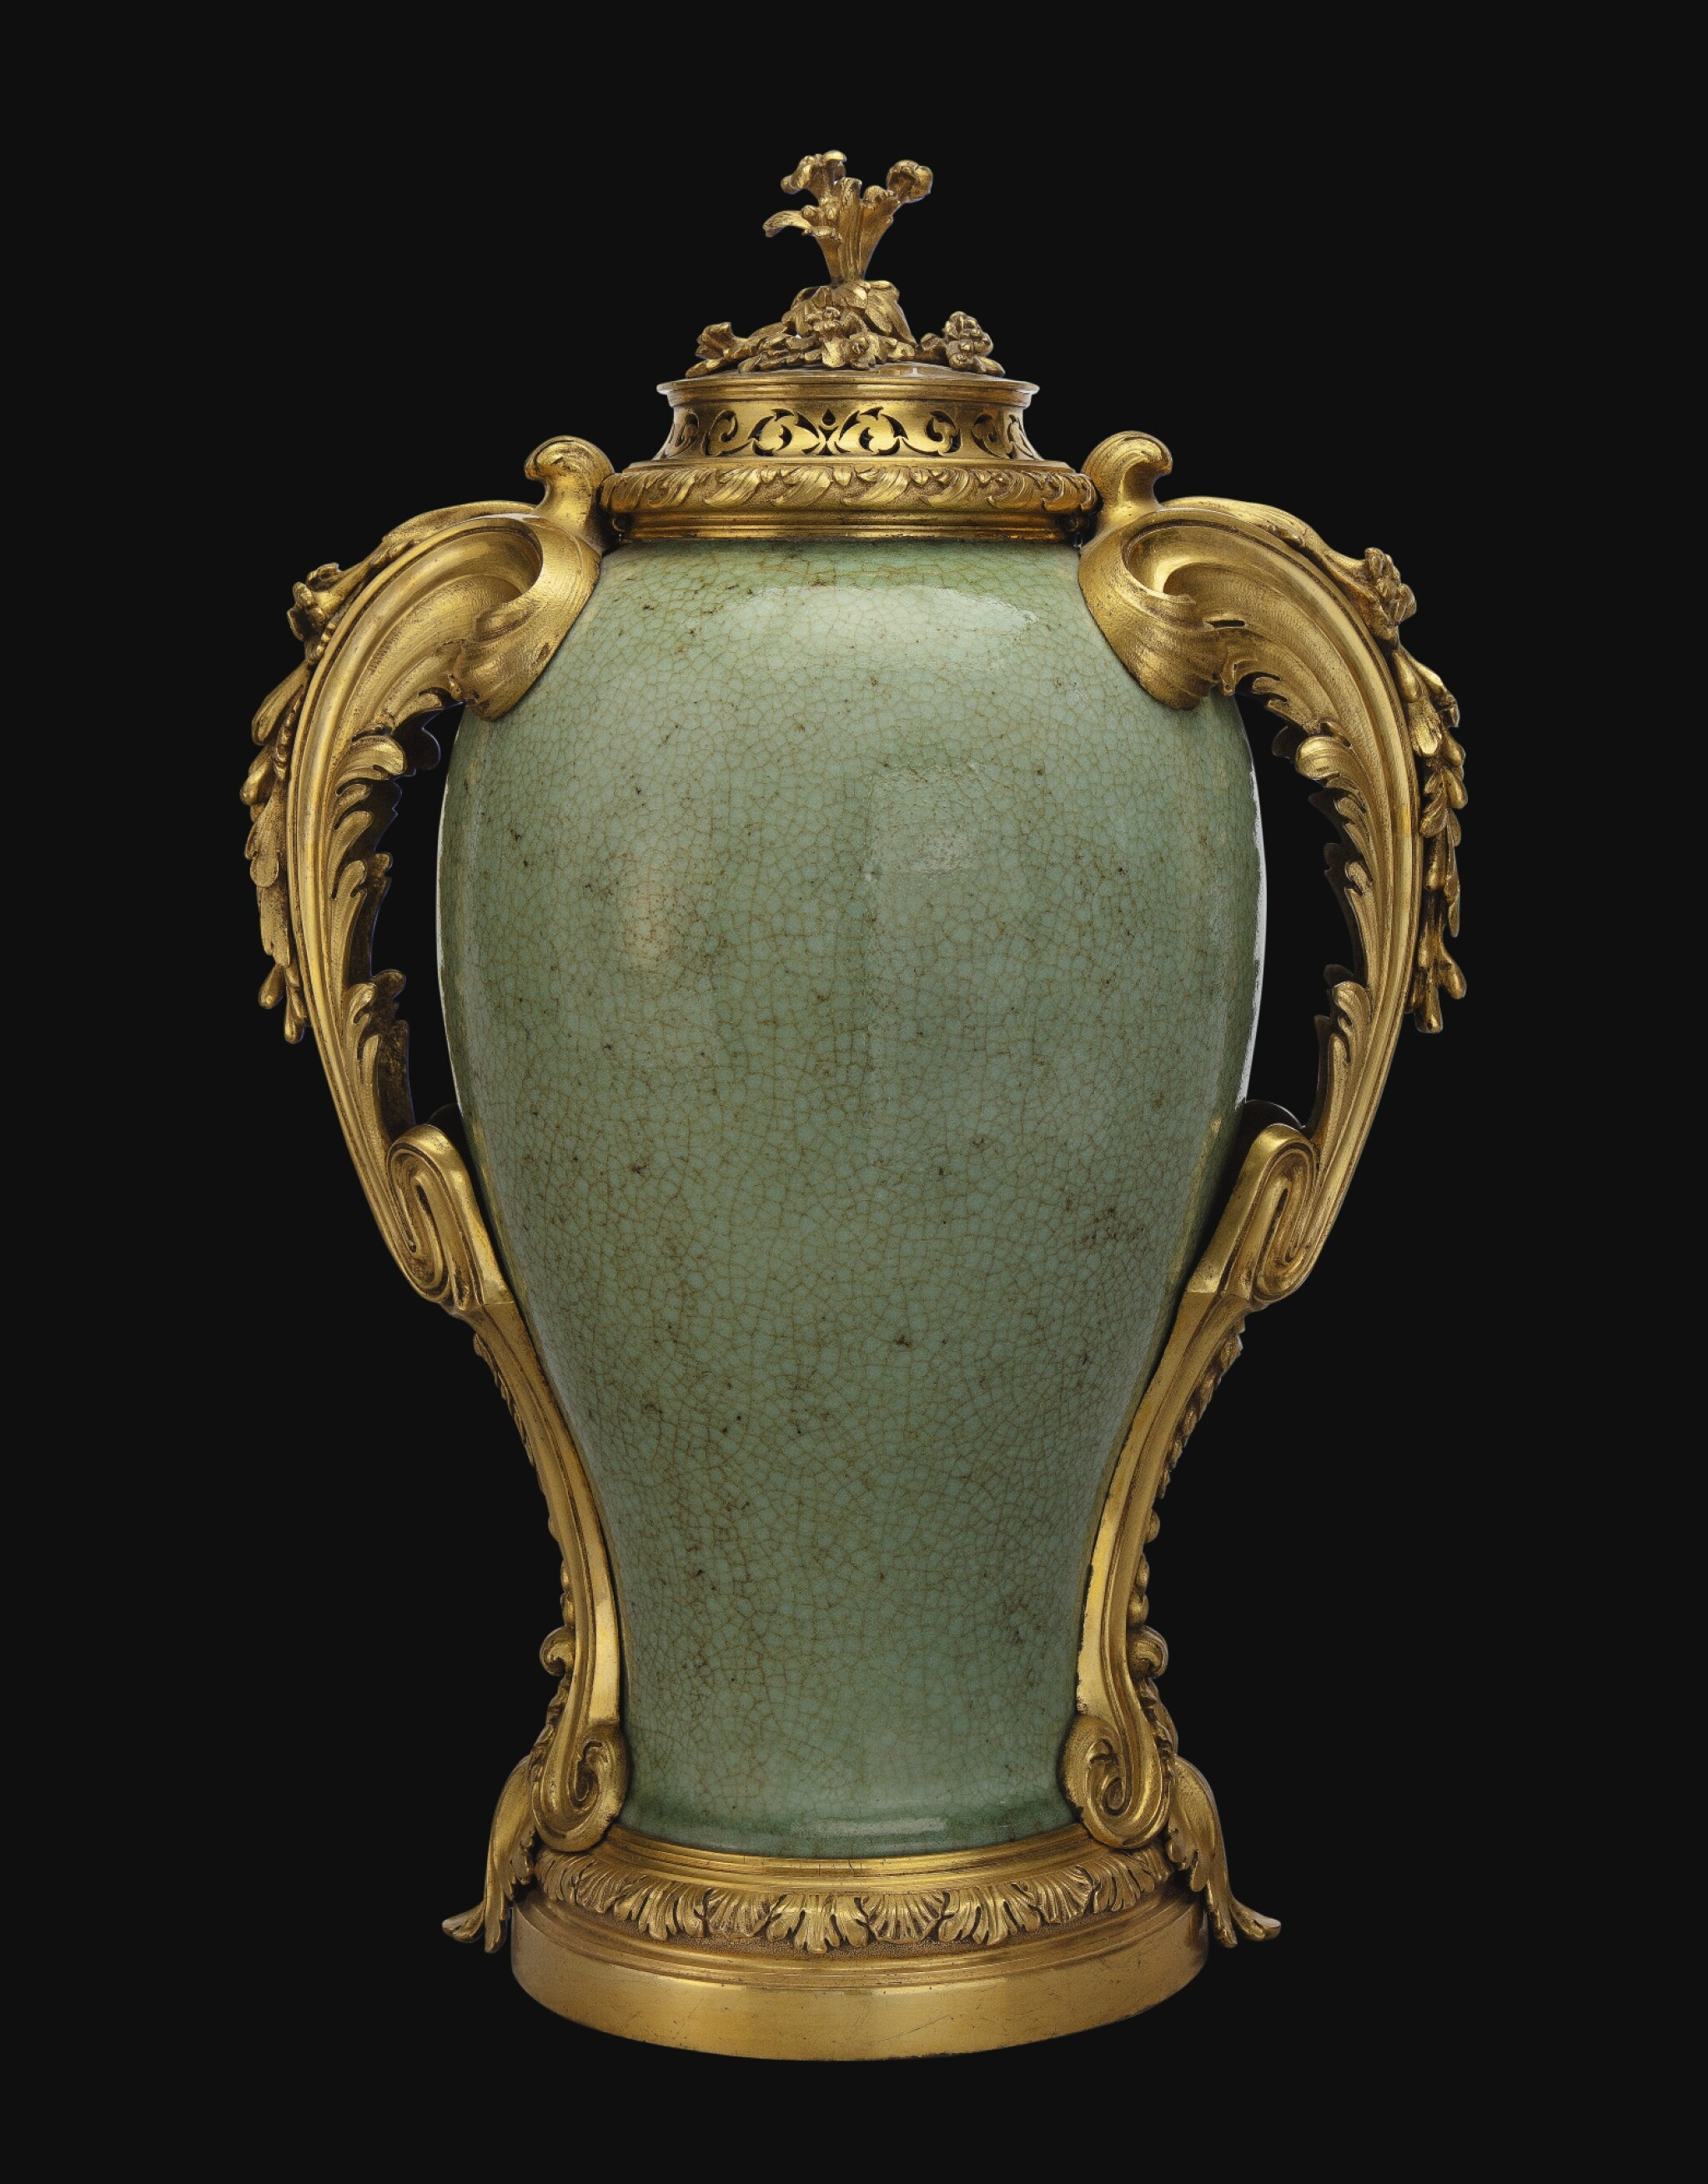 View full screen - View 1 of Lot 774. A LOUIS XV GILT-BRONZE MOUNTED CHINESE CRACKLE-GLAZED CELADON VASE, THE PORCELAIN QING DYNASTY, 18TH CENTURY, THE MOUNTS CIRCA 1760, IN THE MANNER OF DUPLESSIS.